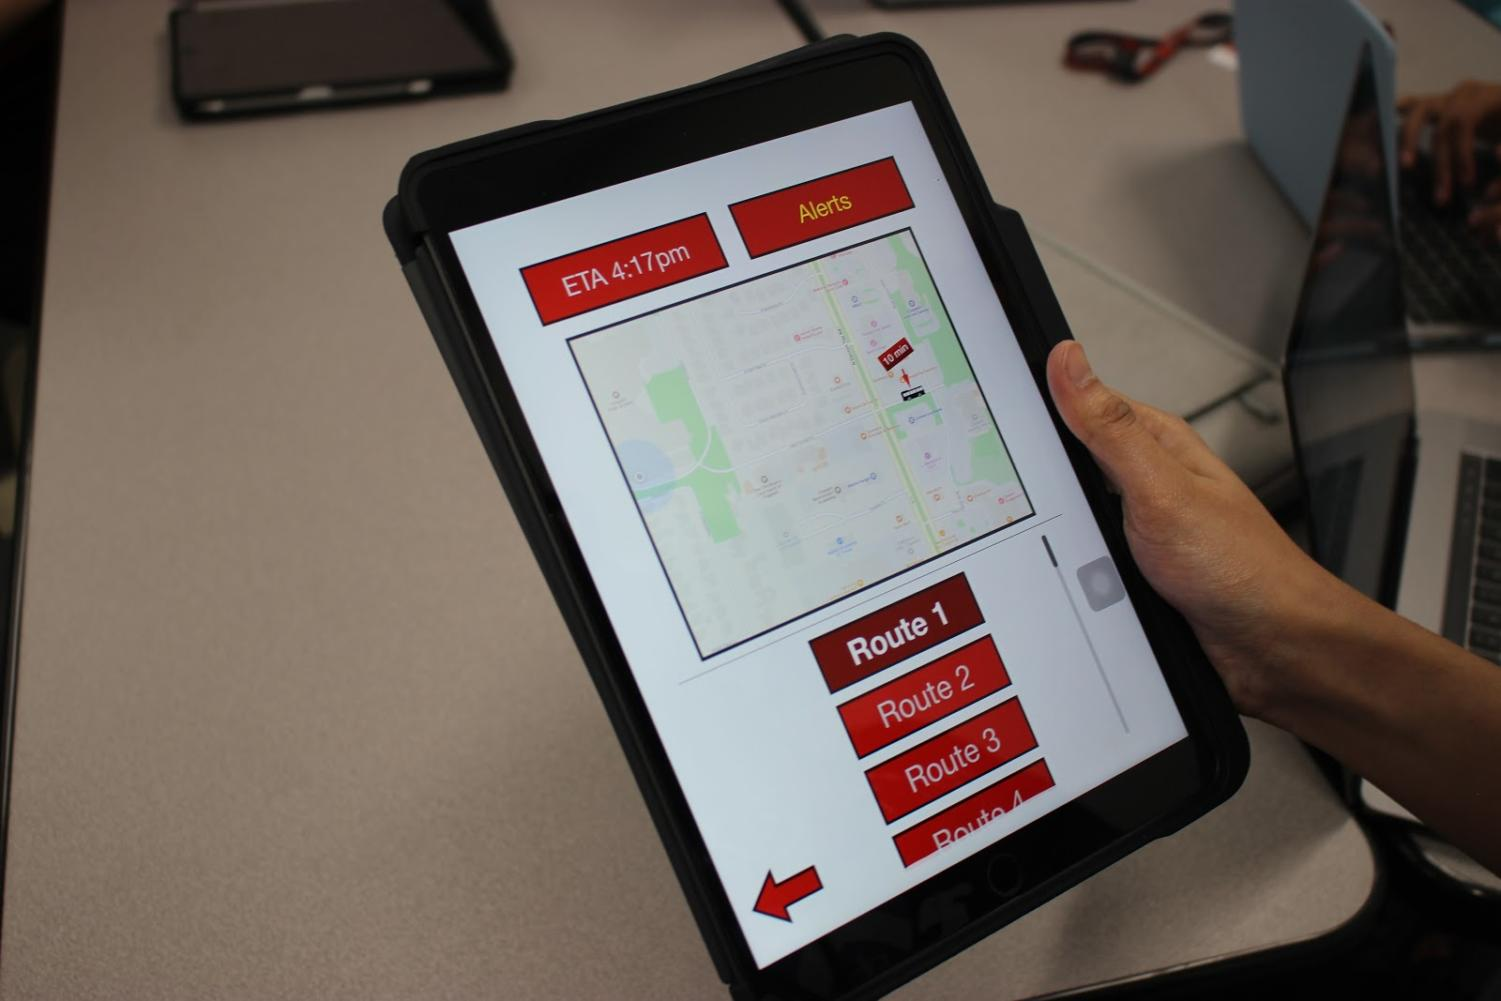 Coppell High School senior Ridha Syed shows her iPad app prototype in her eighth period Practicum and STEM class. Syed made a prototype that tracks bus routes, indicates when a bus is late and sends alerts to the user.